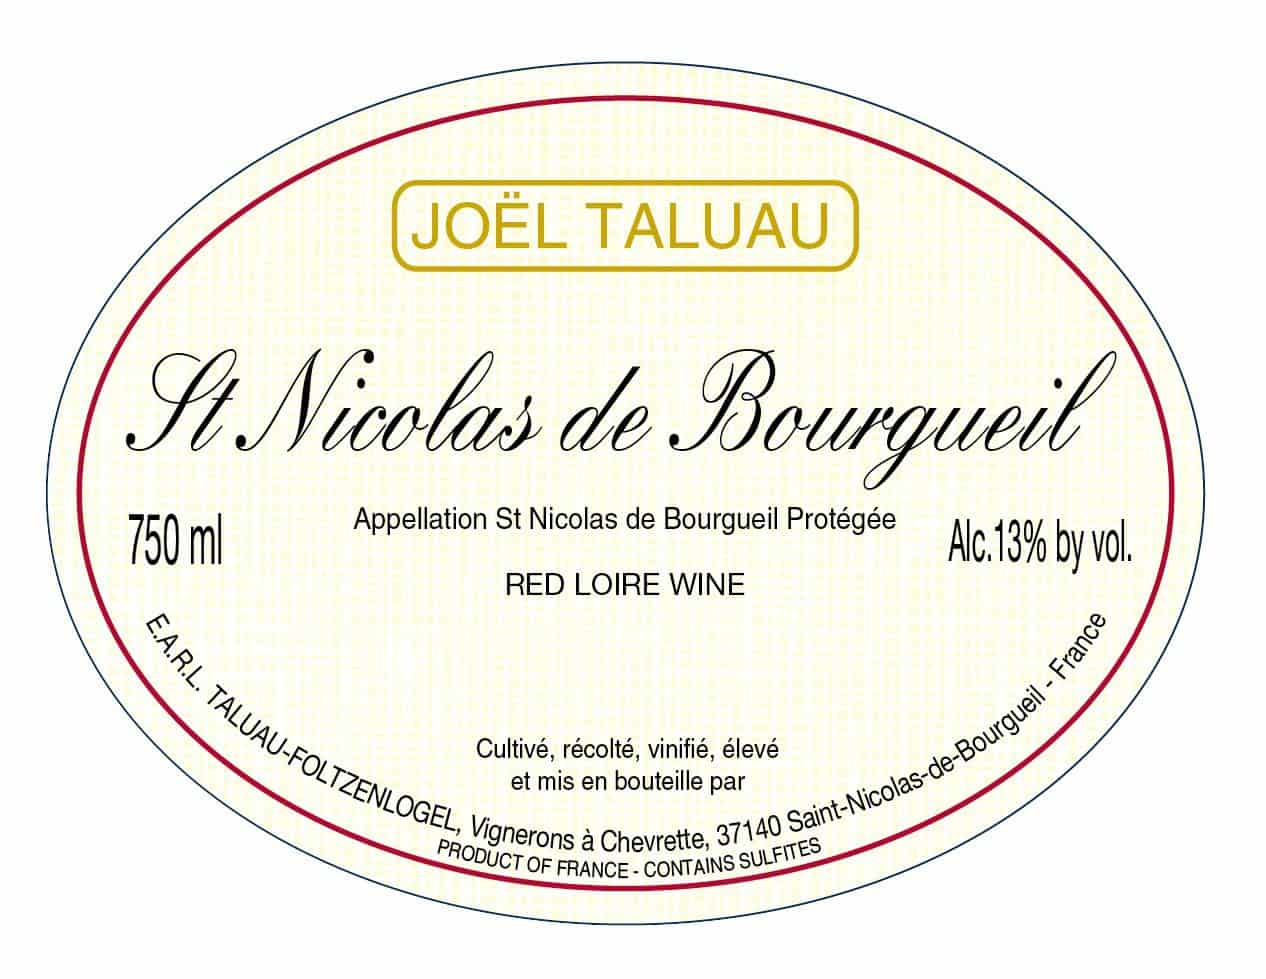 St Nicolas de Bourgueil Red loire wine jpeg